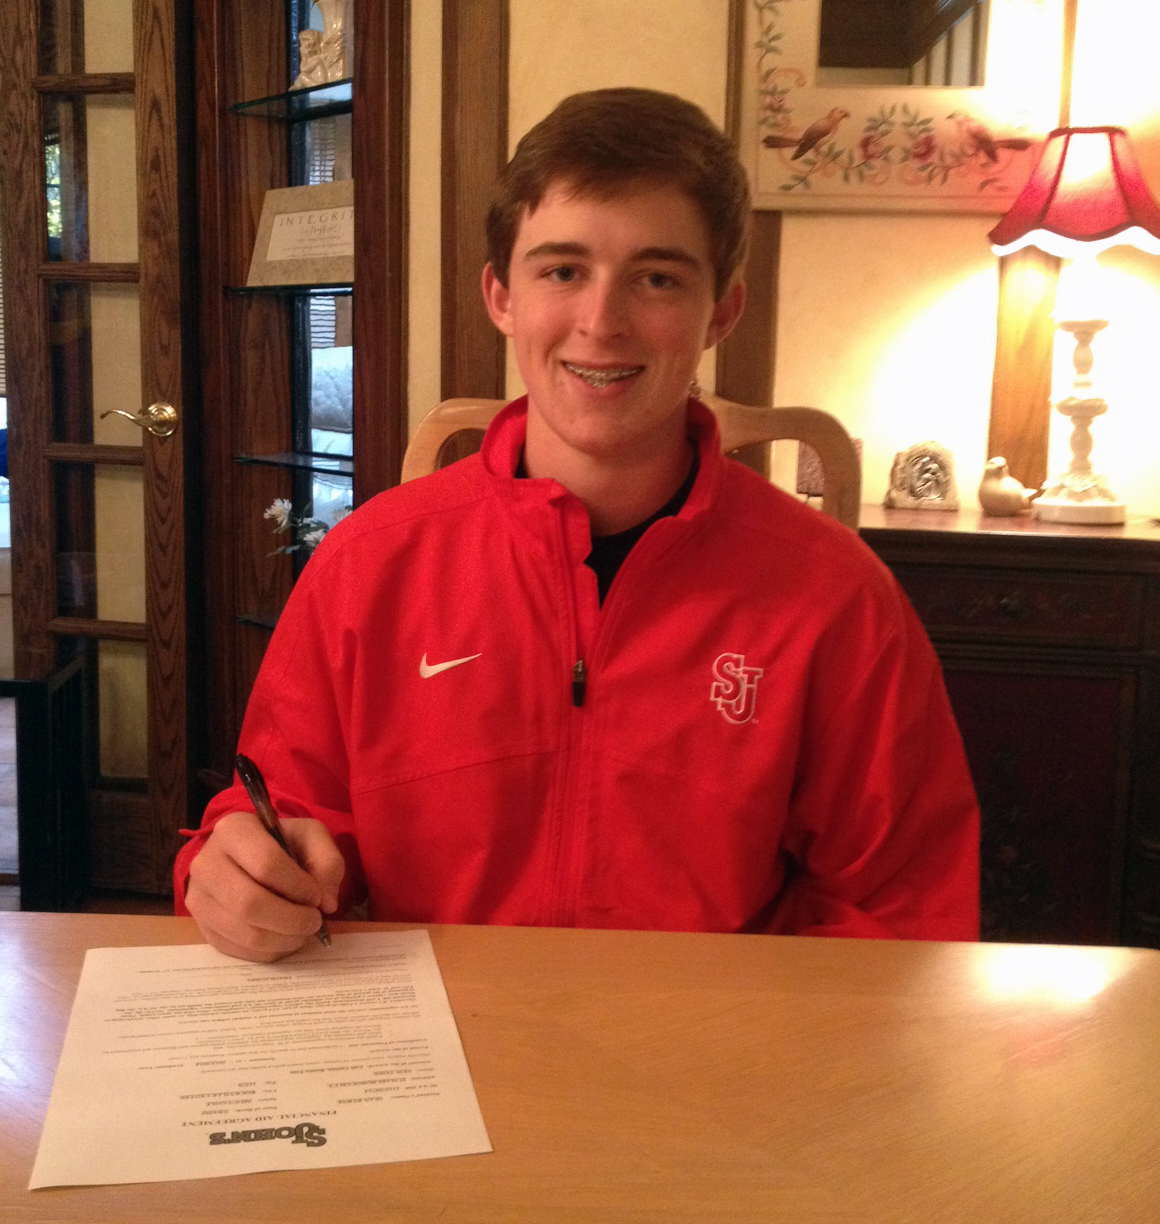 Sean Byrne signs with St. John's